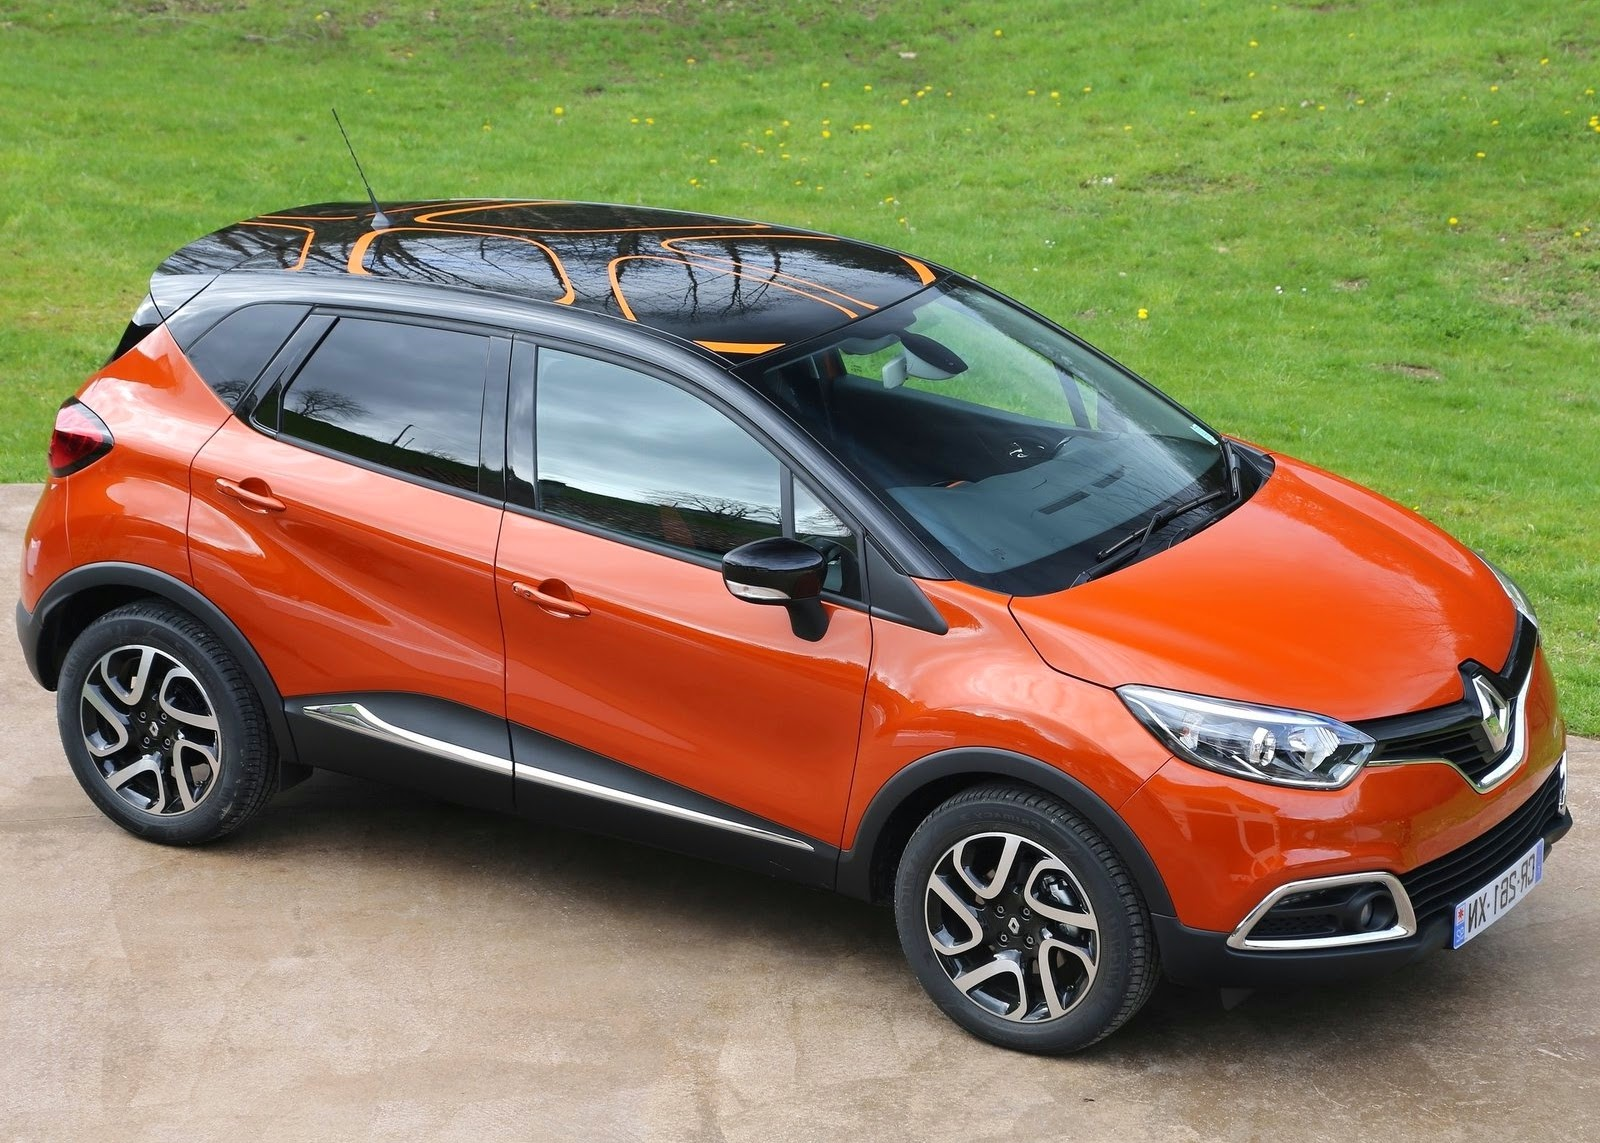 renault captur 0 9 tce 90 3 cylinder 900cc turbo car. Black Bedroom Furniture Sets. Home Design Ideas